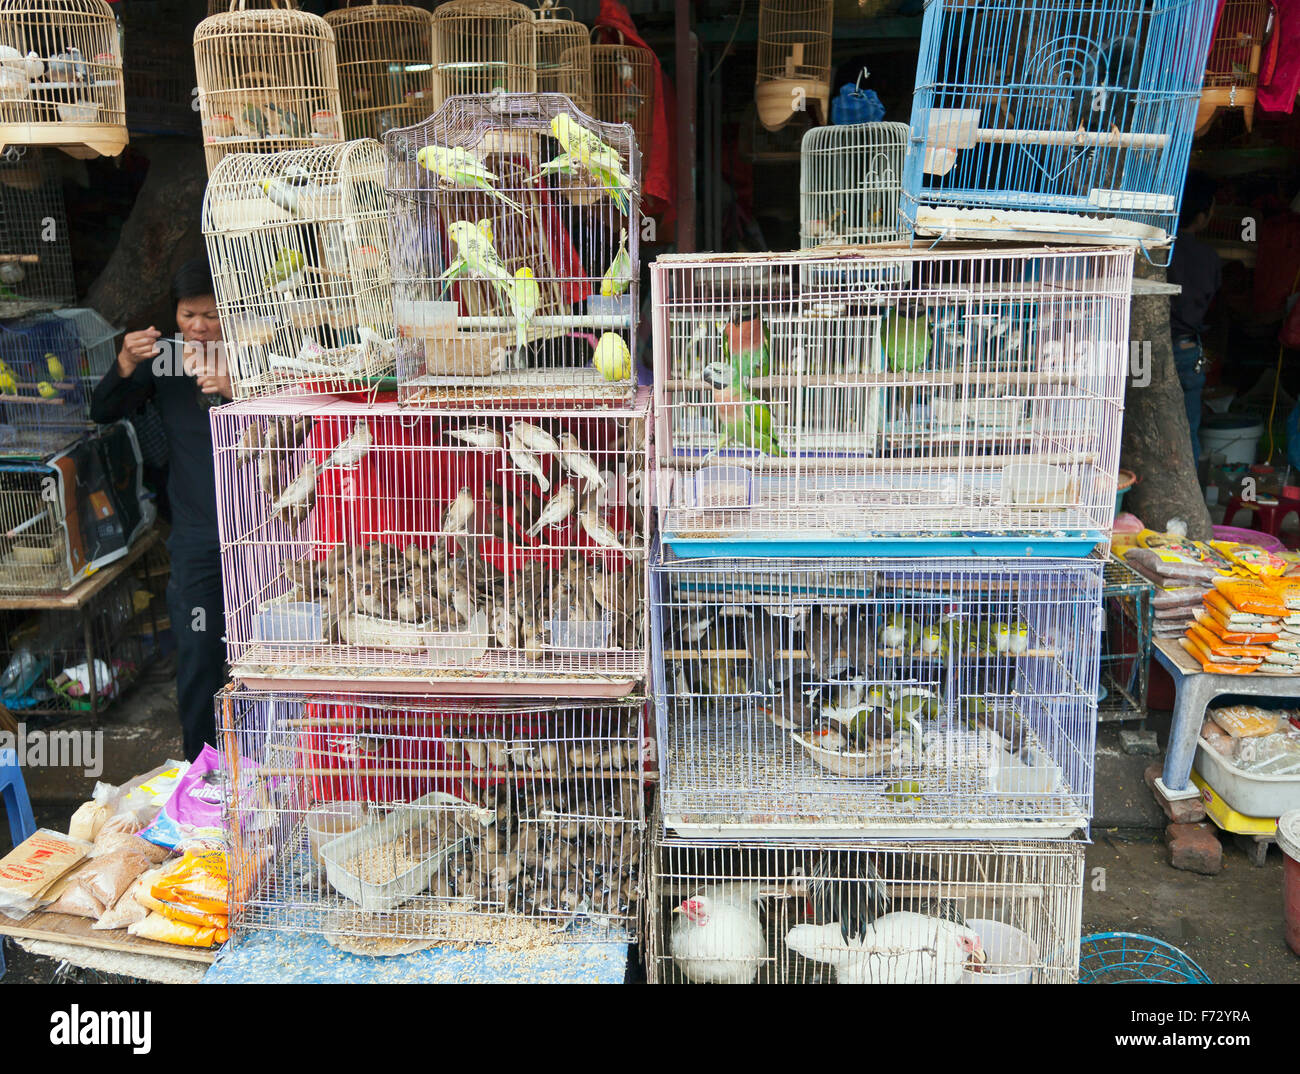 Birds for sale - Stock Image